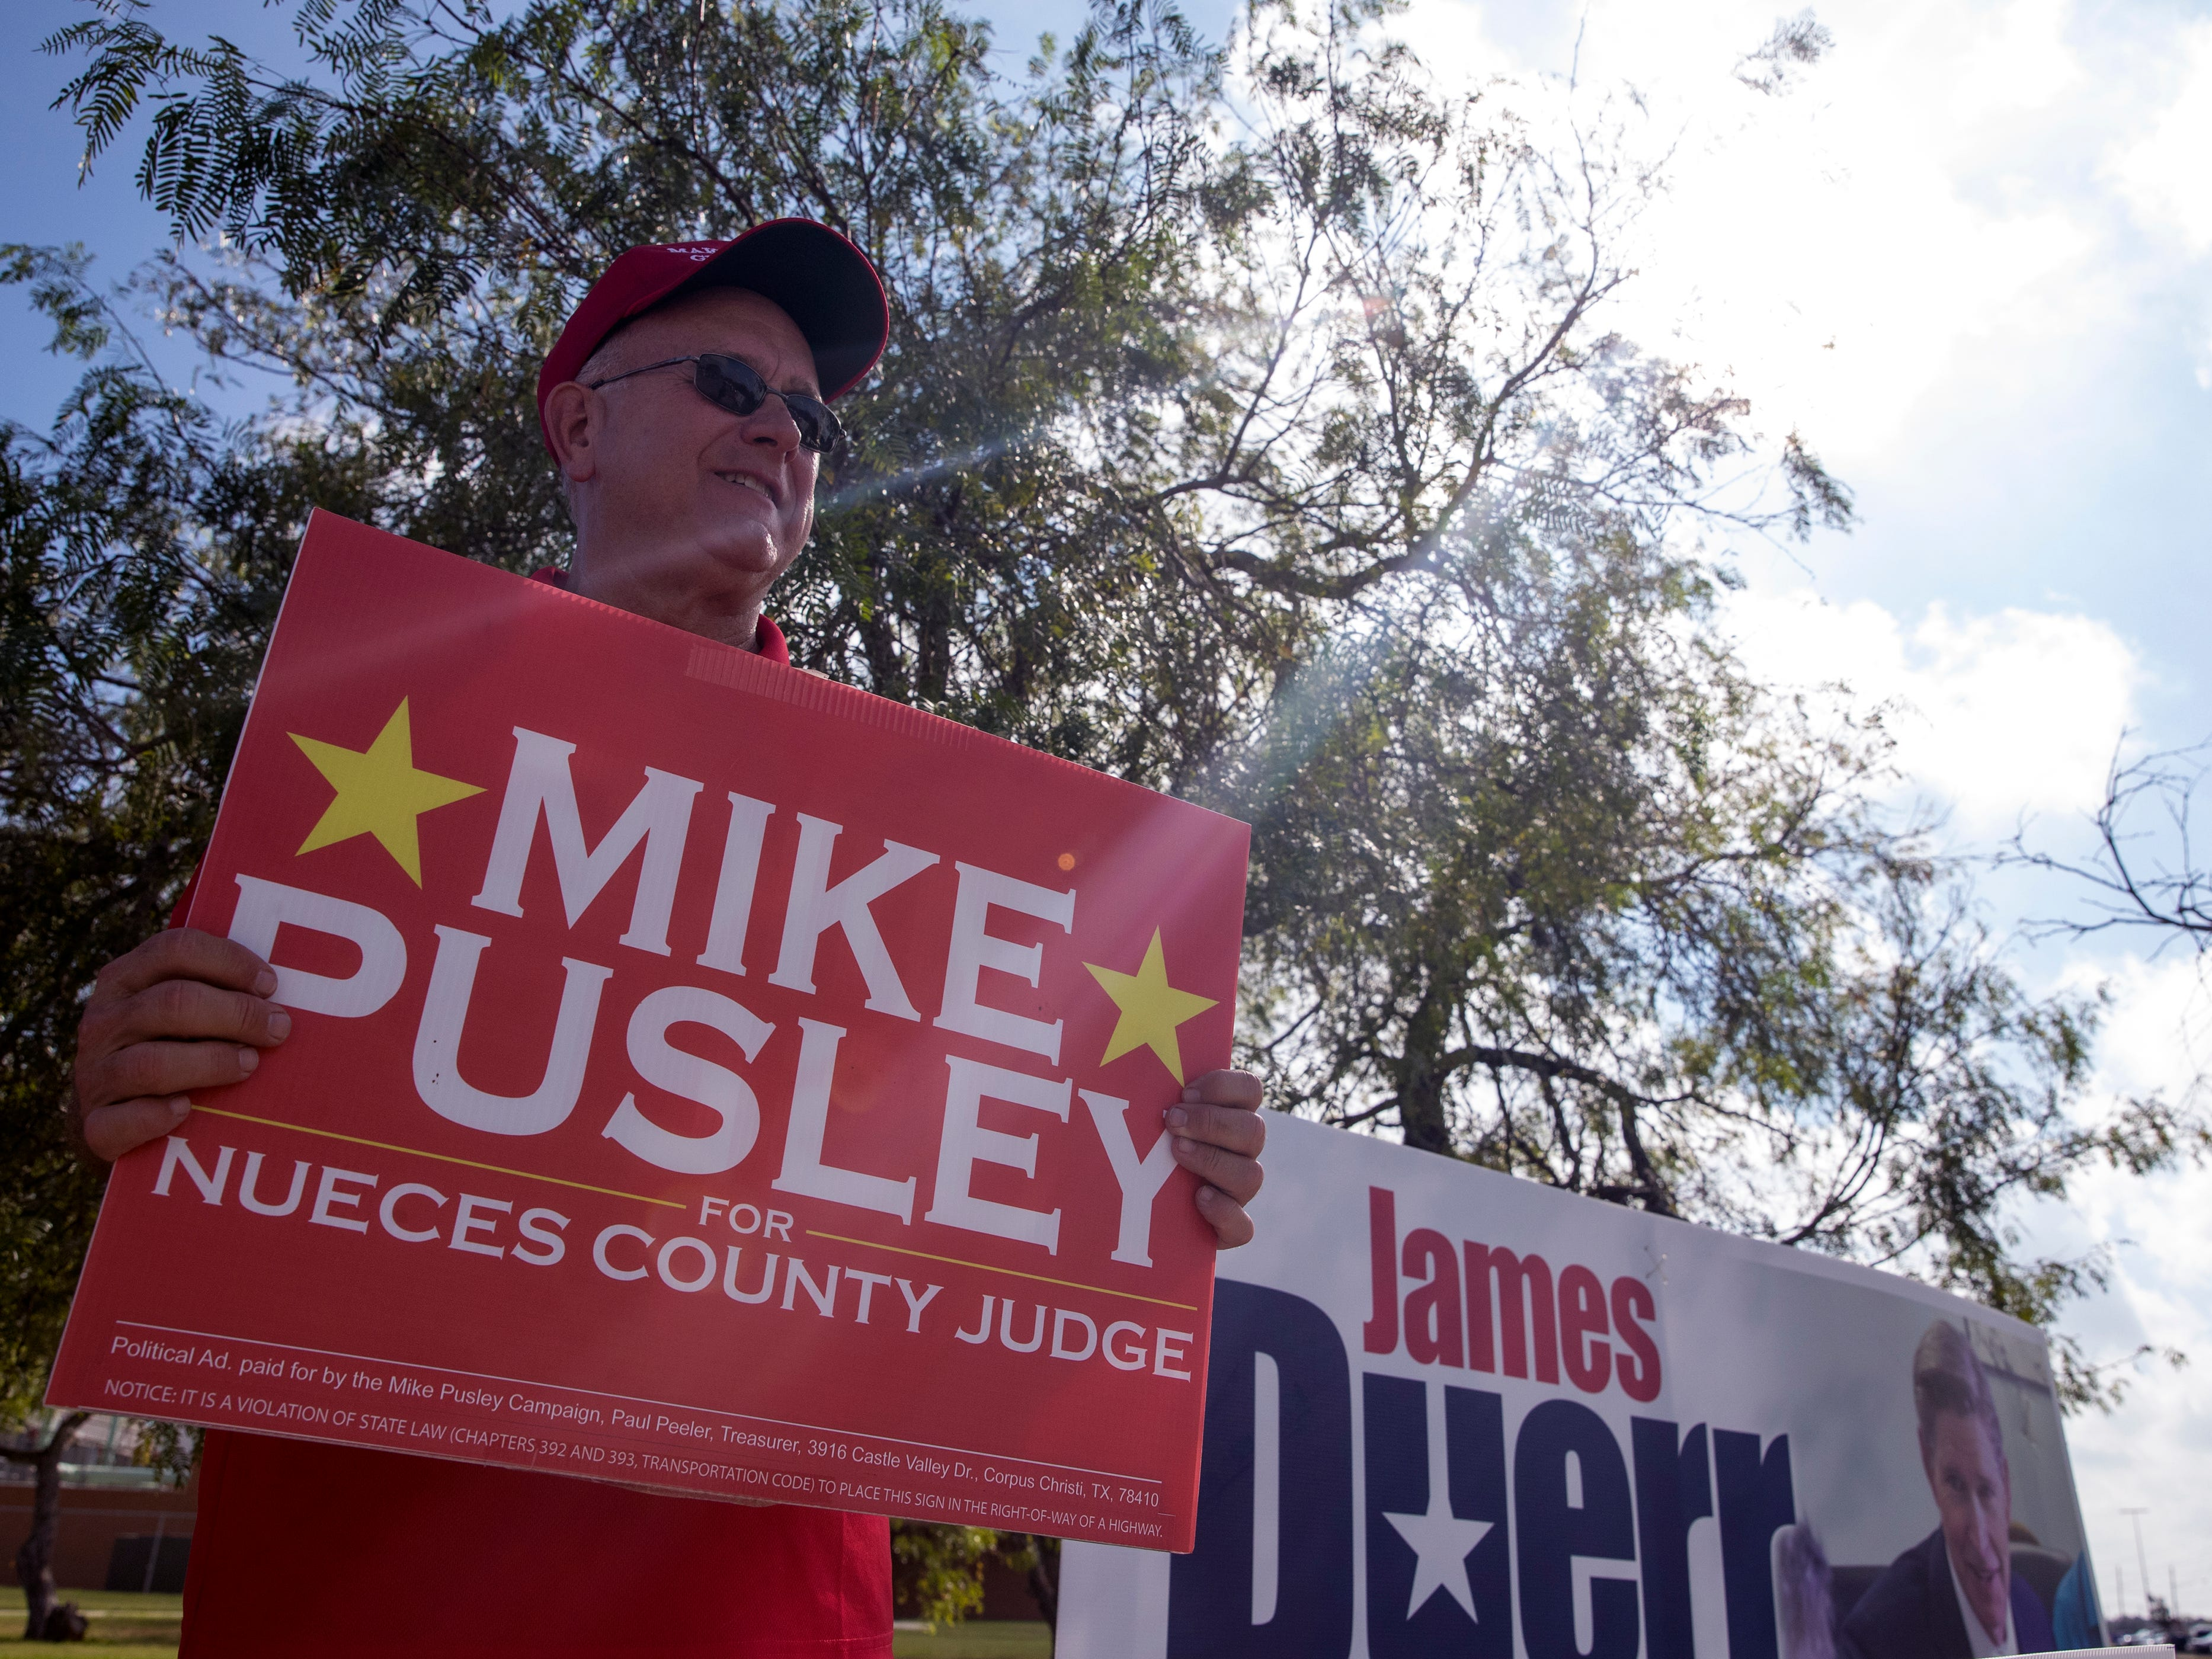 Republican candidate for Nueces County Judge Mike Pusley campaigns outside Veterans Memorial High School onTuesday, November 6, 2018.